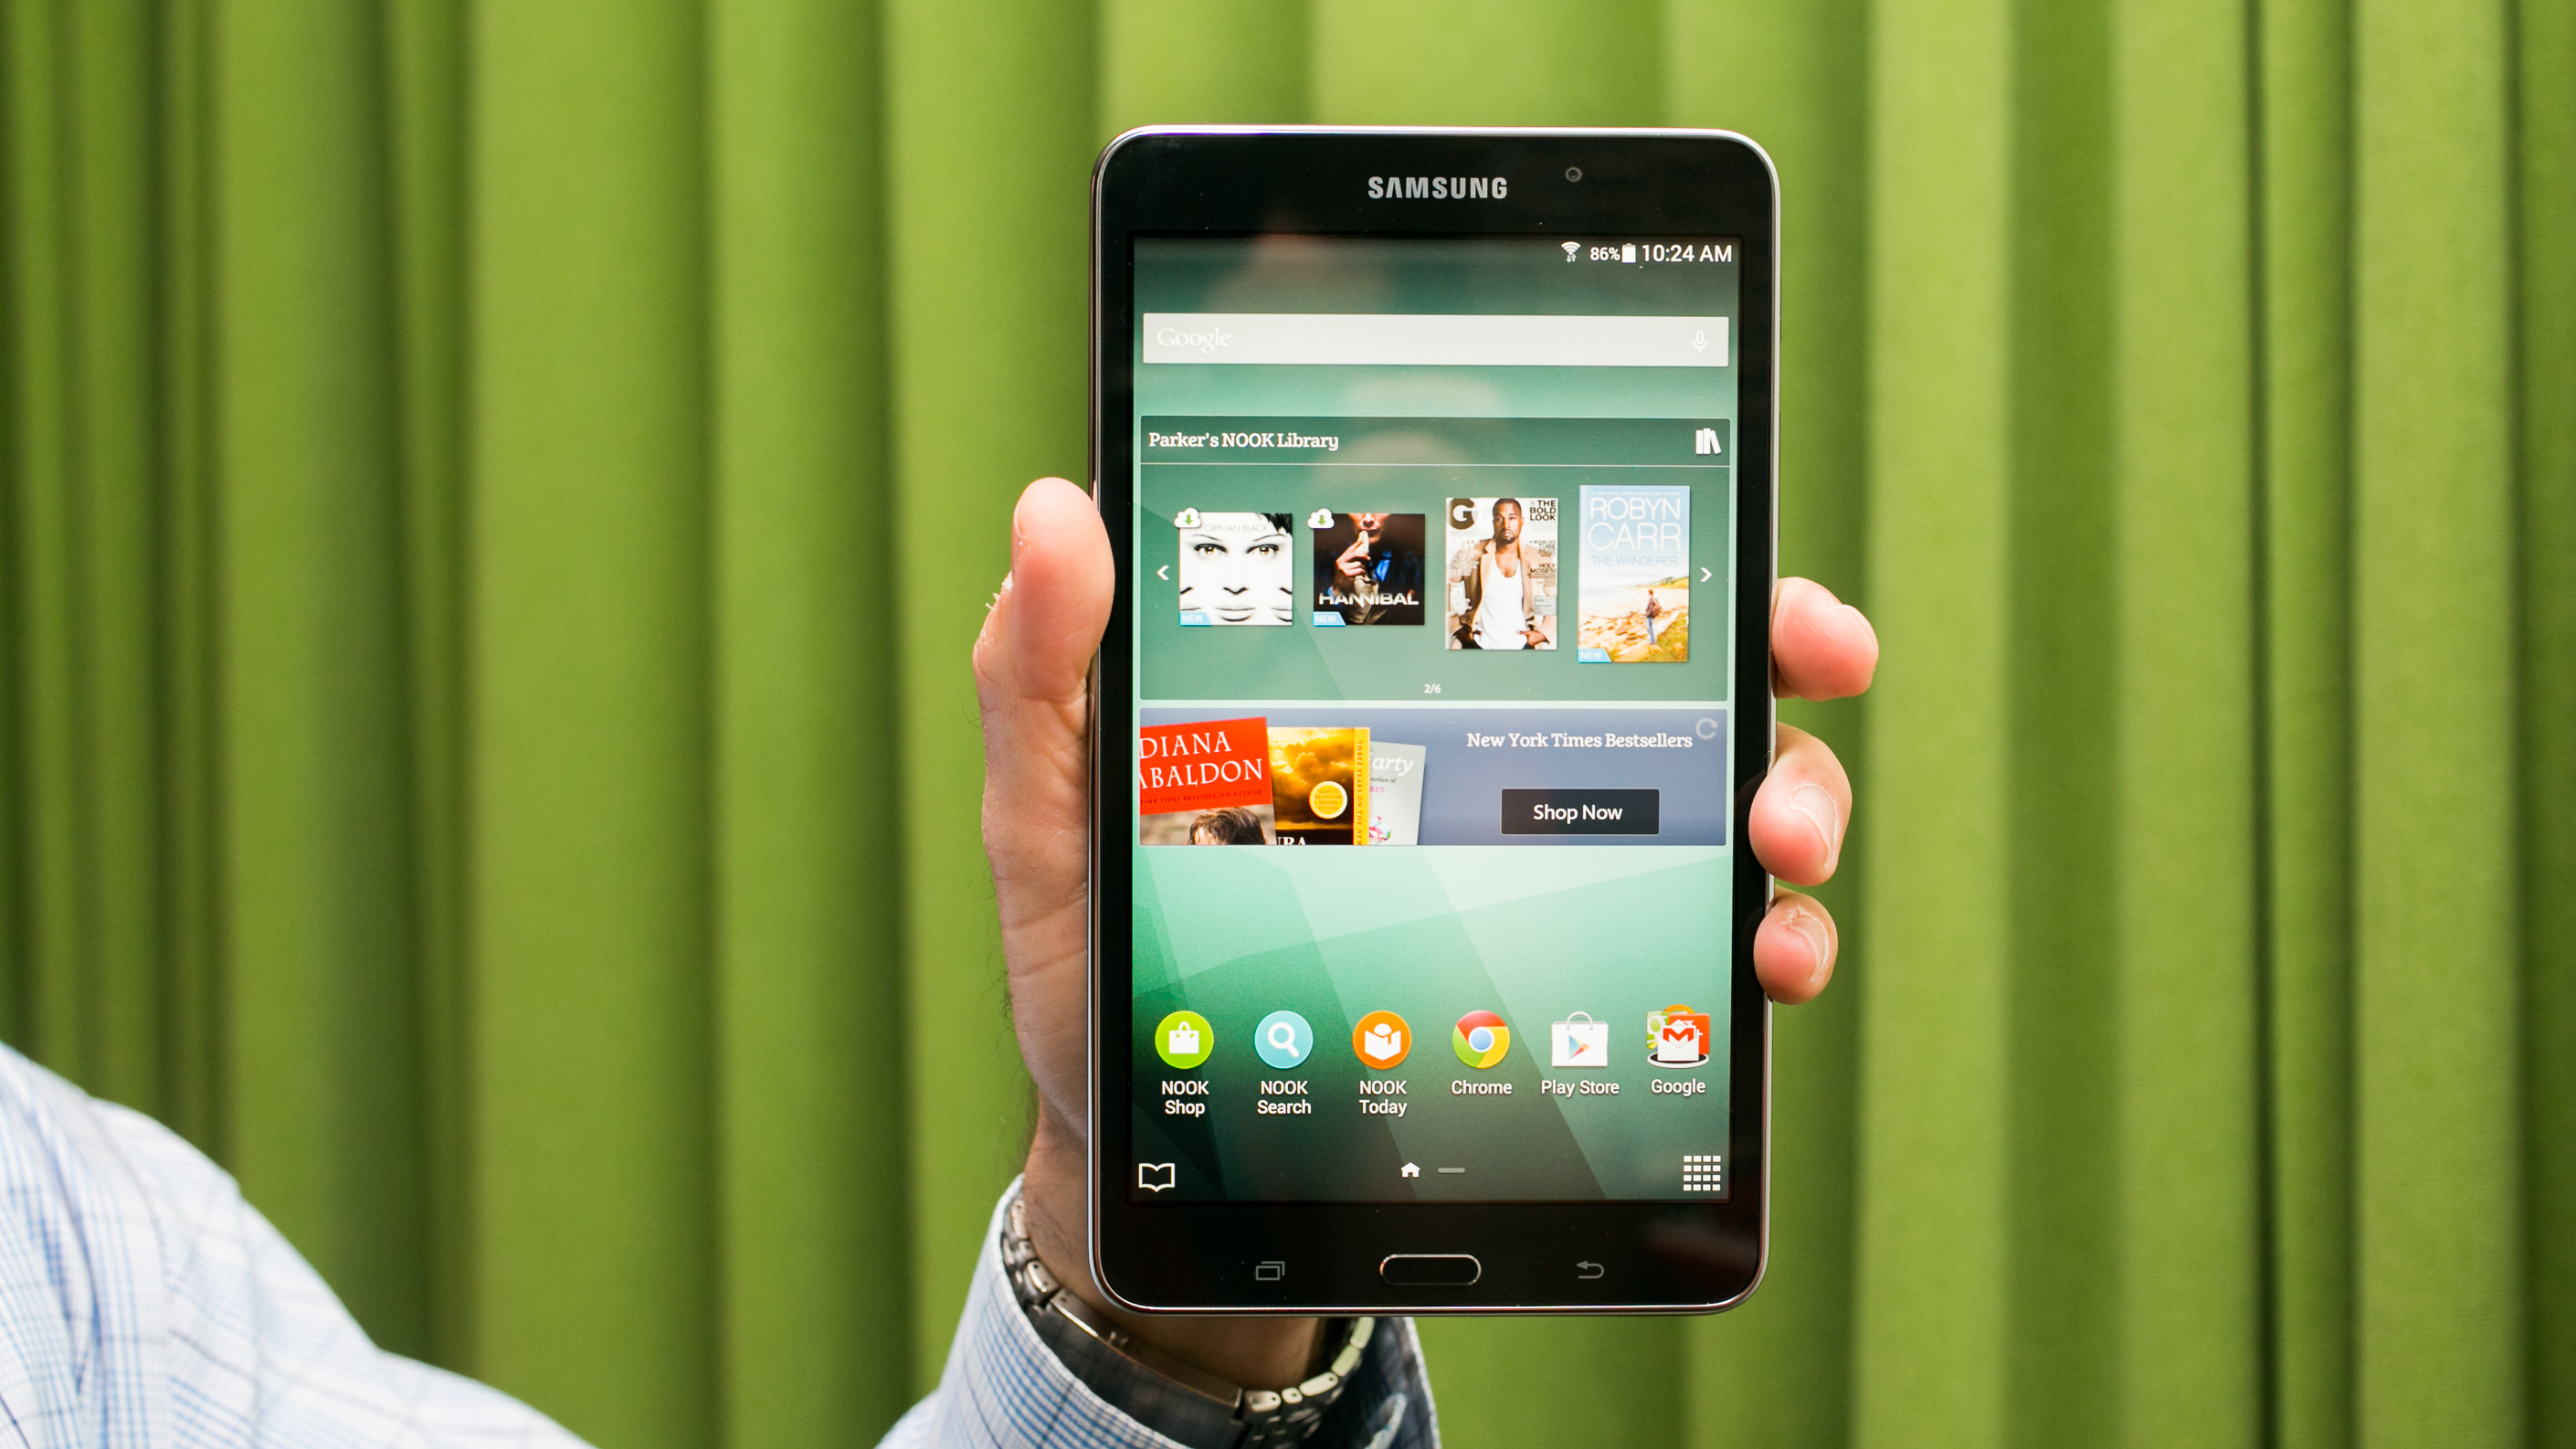 samsung-galaxy-tab-4-nook-product-photos15.jpg